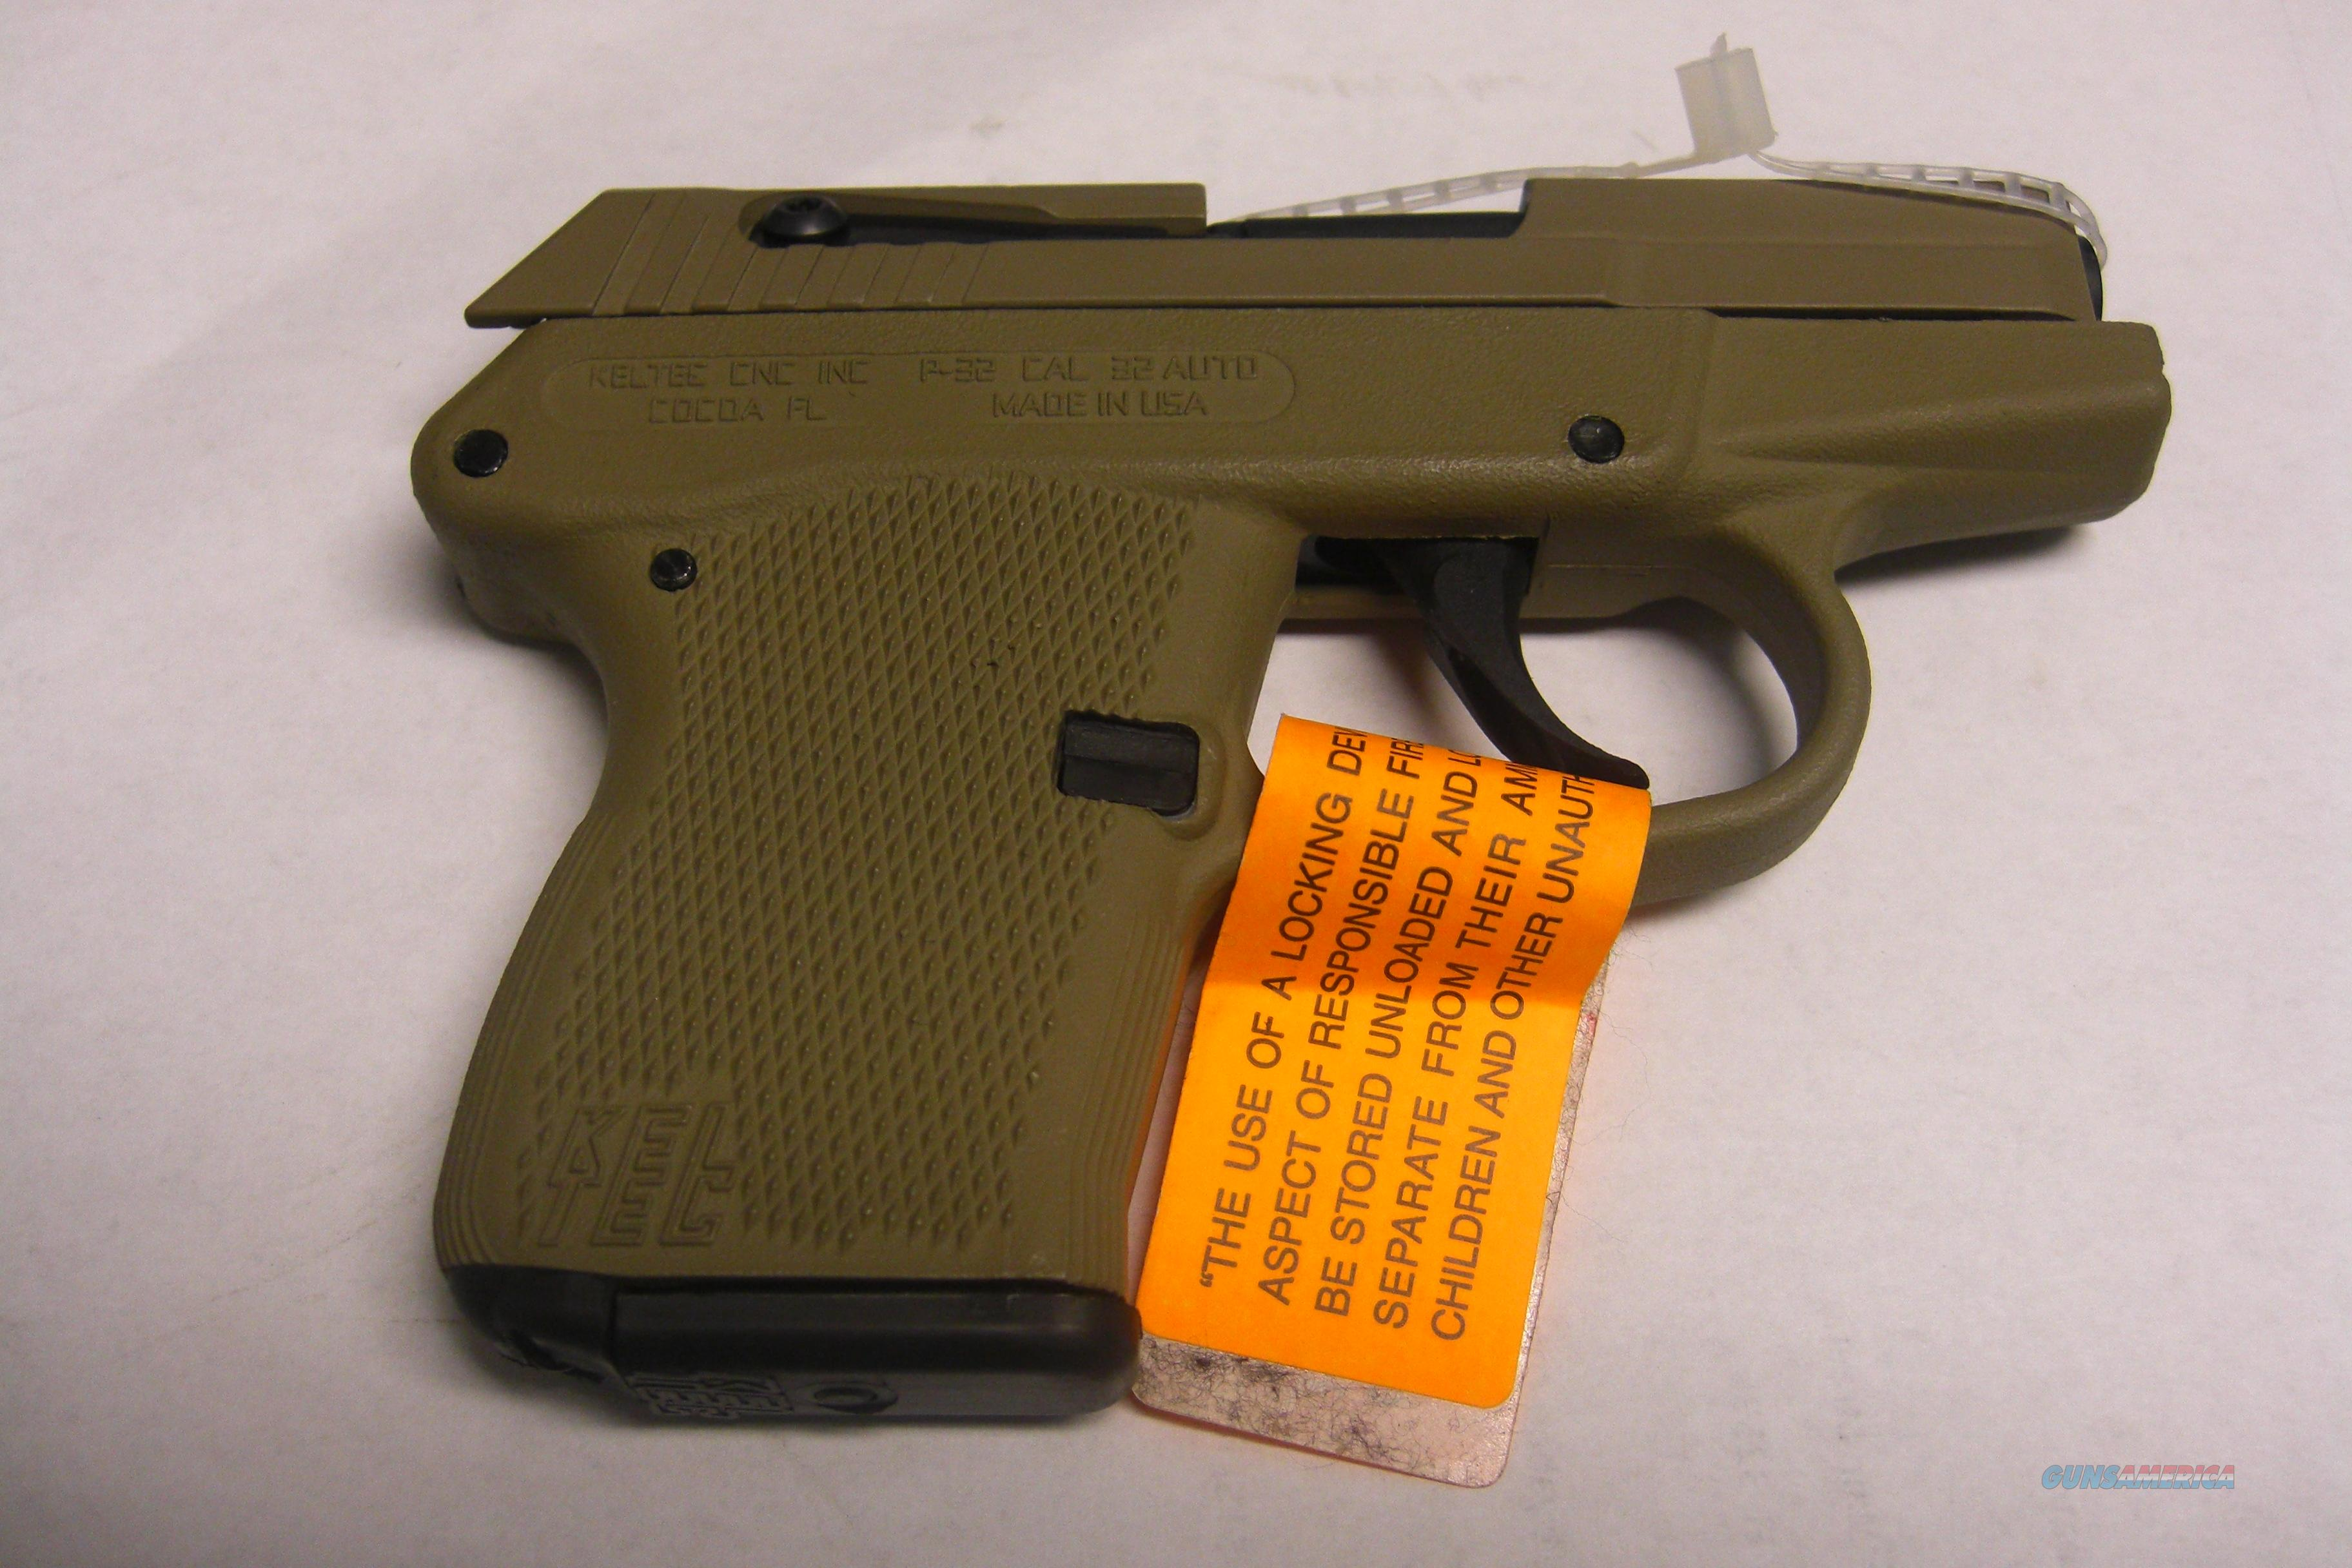 P-32  w/overall tan finish  Guns > Pistols > Kel-Tec Pistols > Pocket Pistol Type